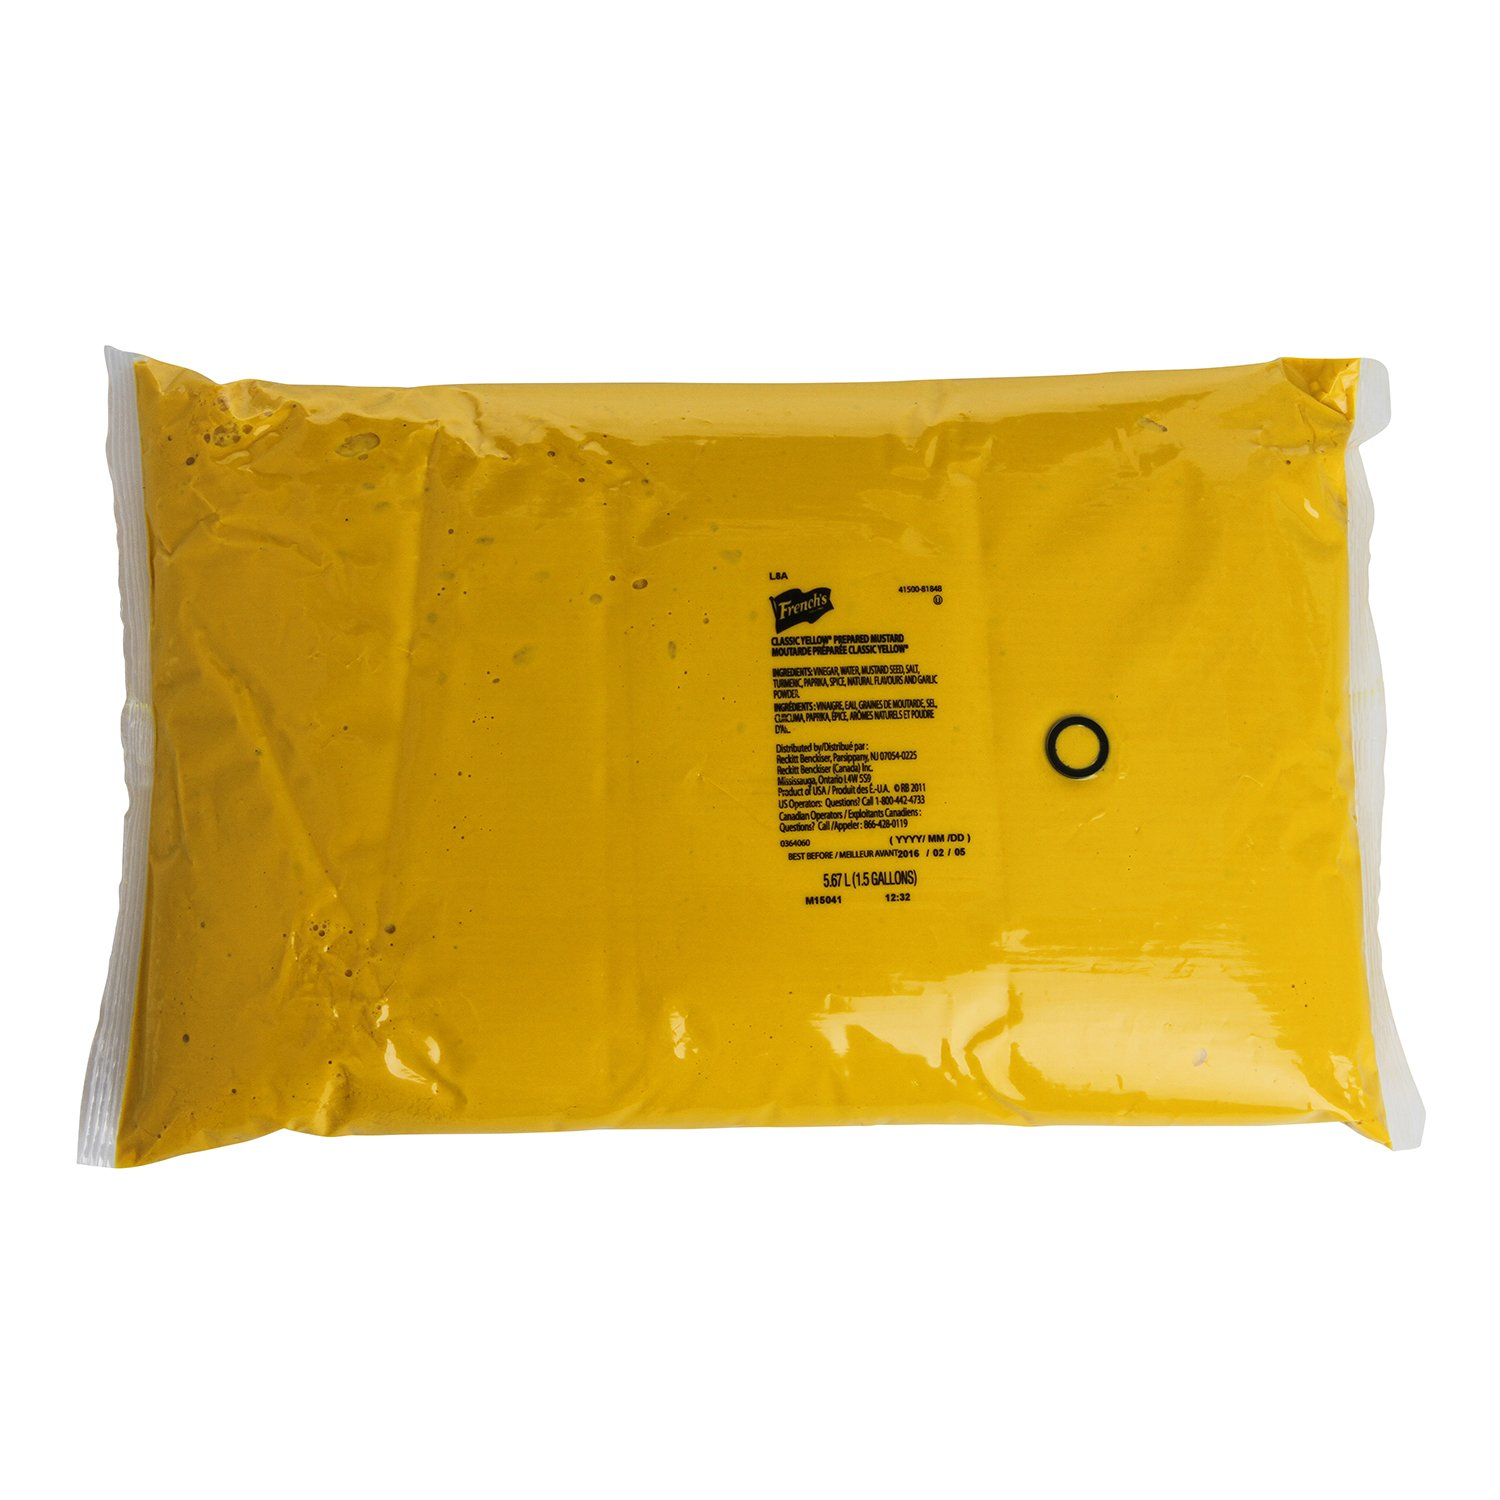 French's Classic Yellow Mustard Pouch, 192 Fluid Ounce